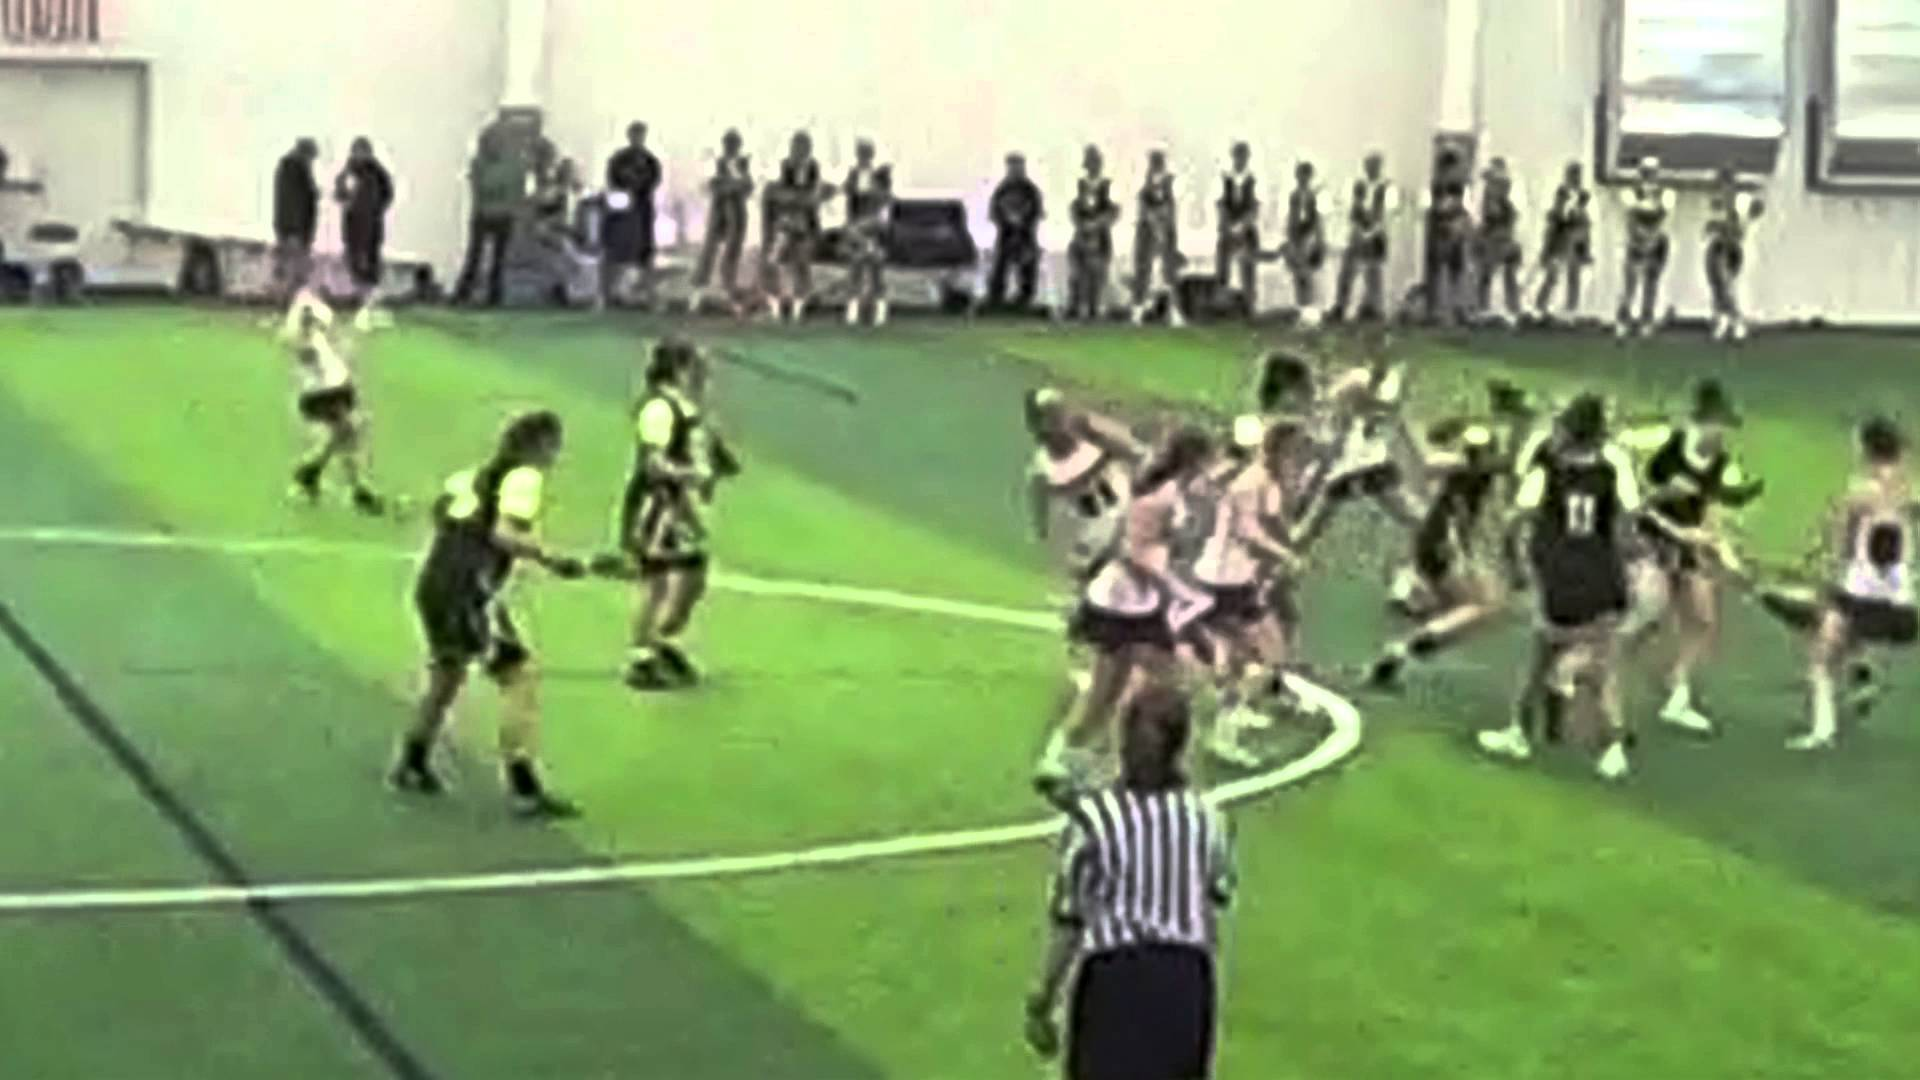 Female lacrosse player drills player 3 times in the face with stick